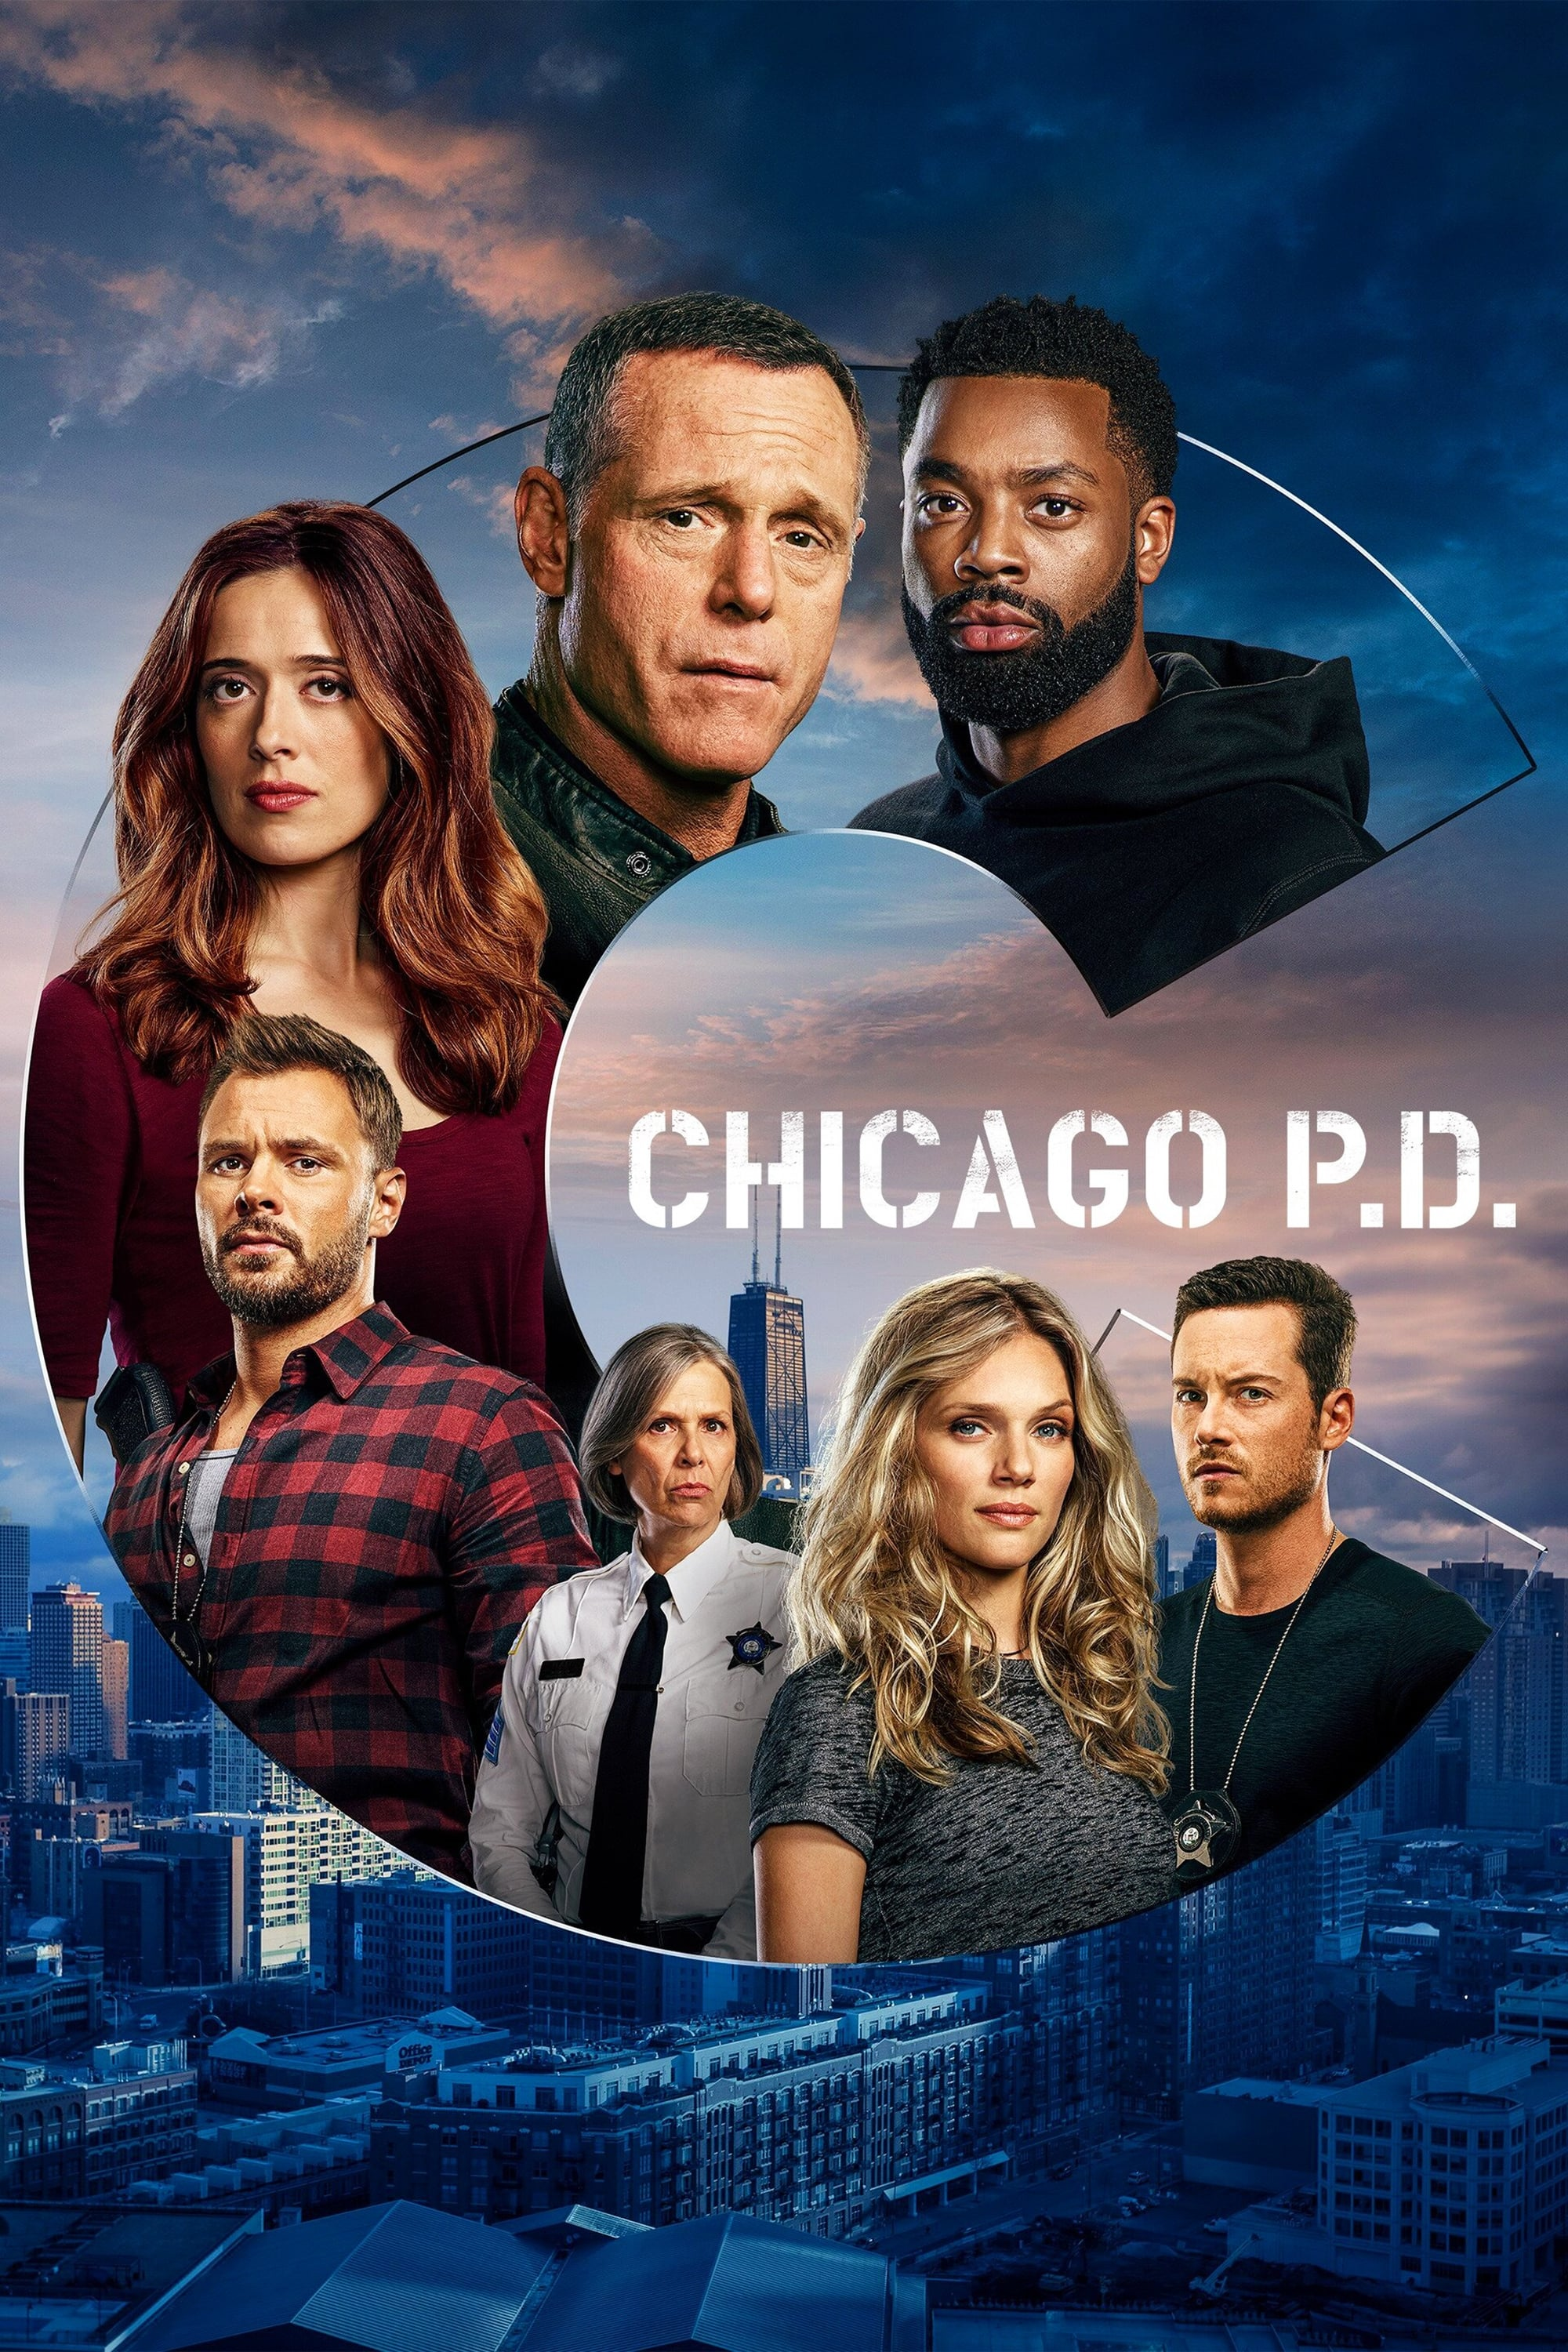 Chicago P.D. Season 8